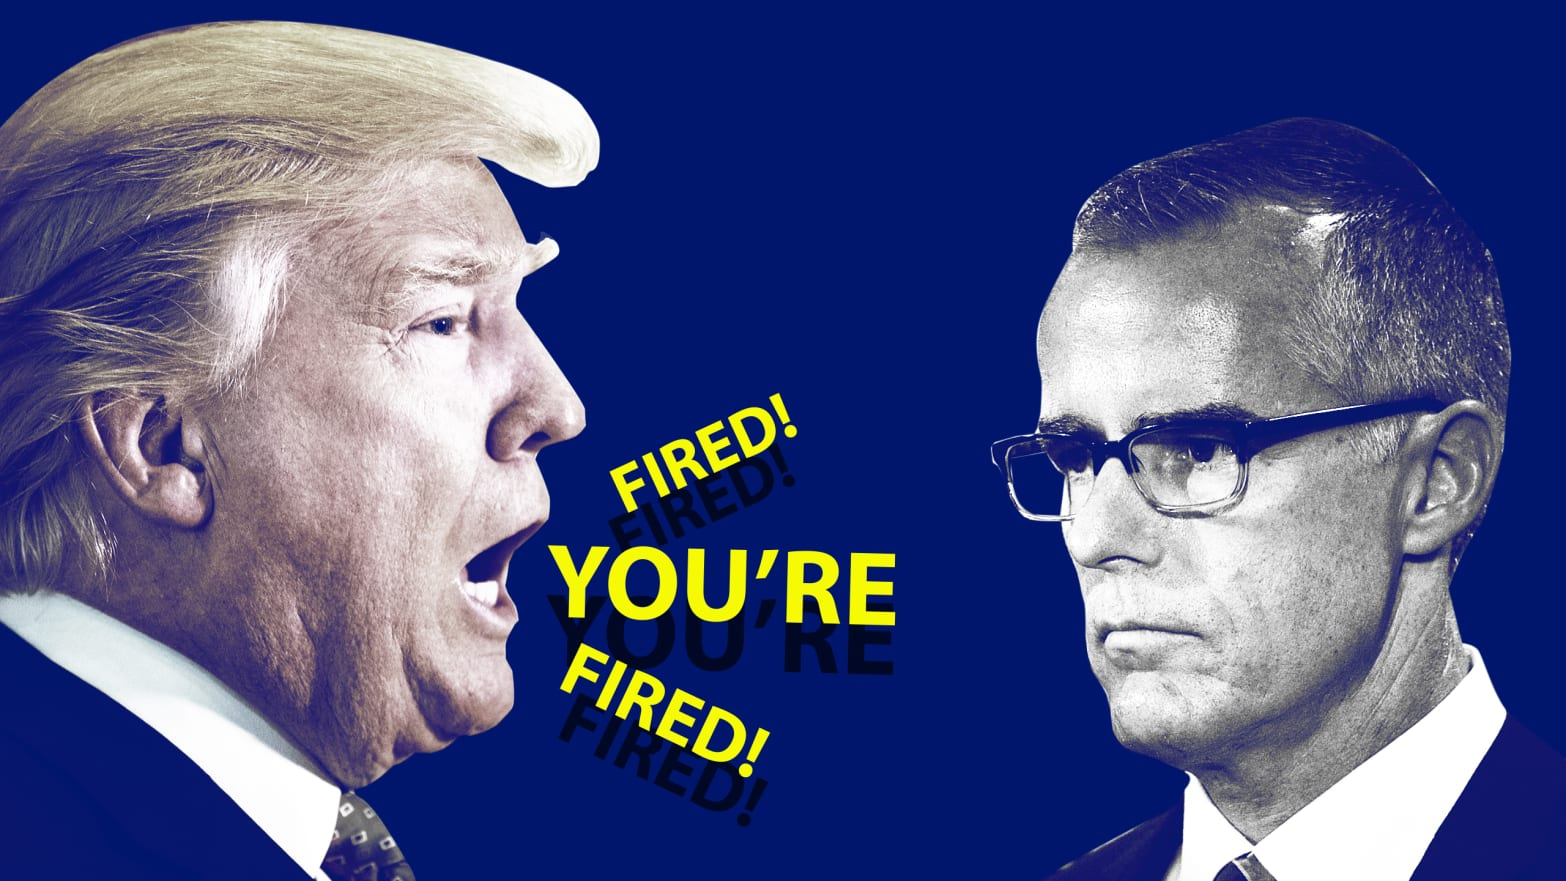 Trump Imposes His Will, and His New FBI Director Gets in Line